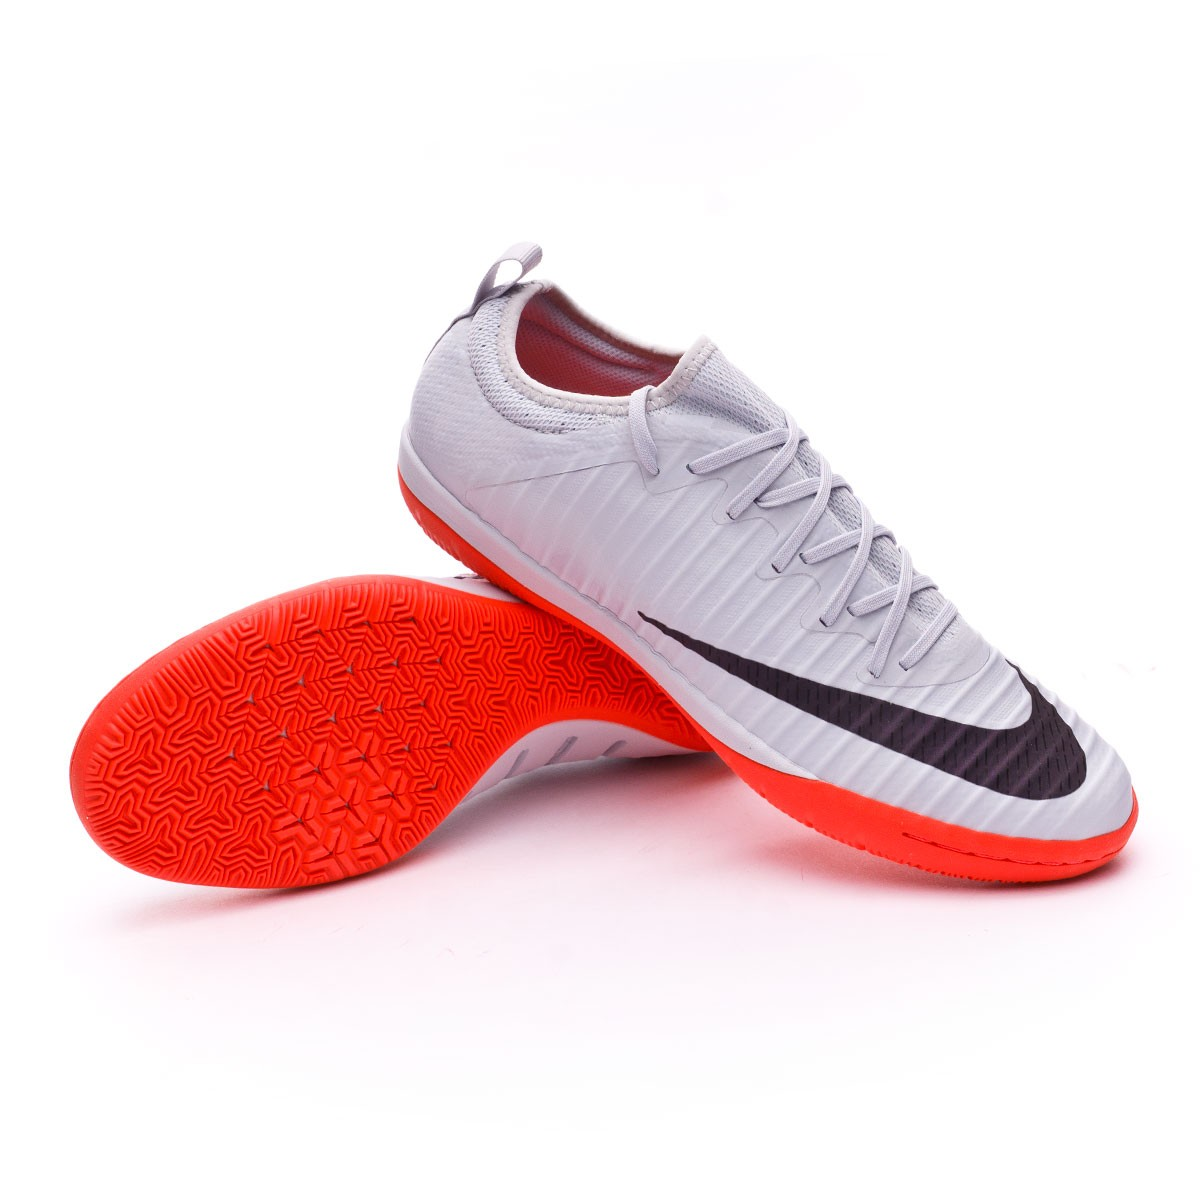 buy popular a3638 90016 Zapatilla MercurialX Finale II Special Edition IC Pure  platinum-Black-Bright crimson